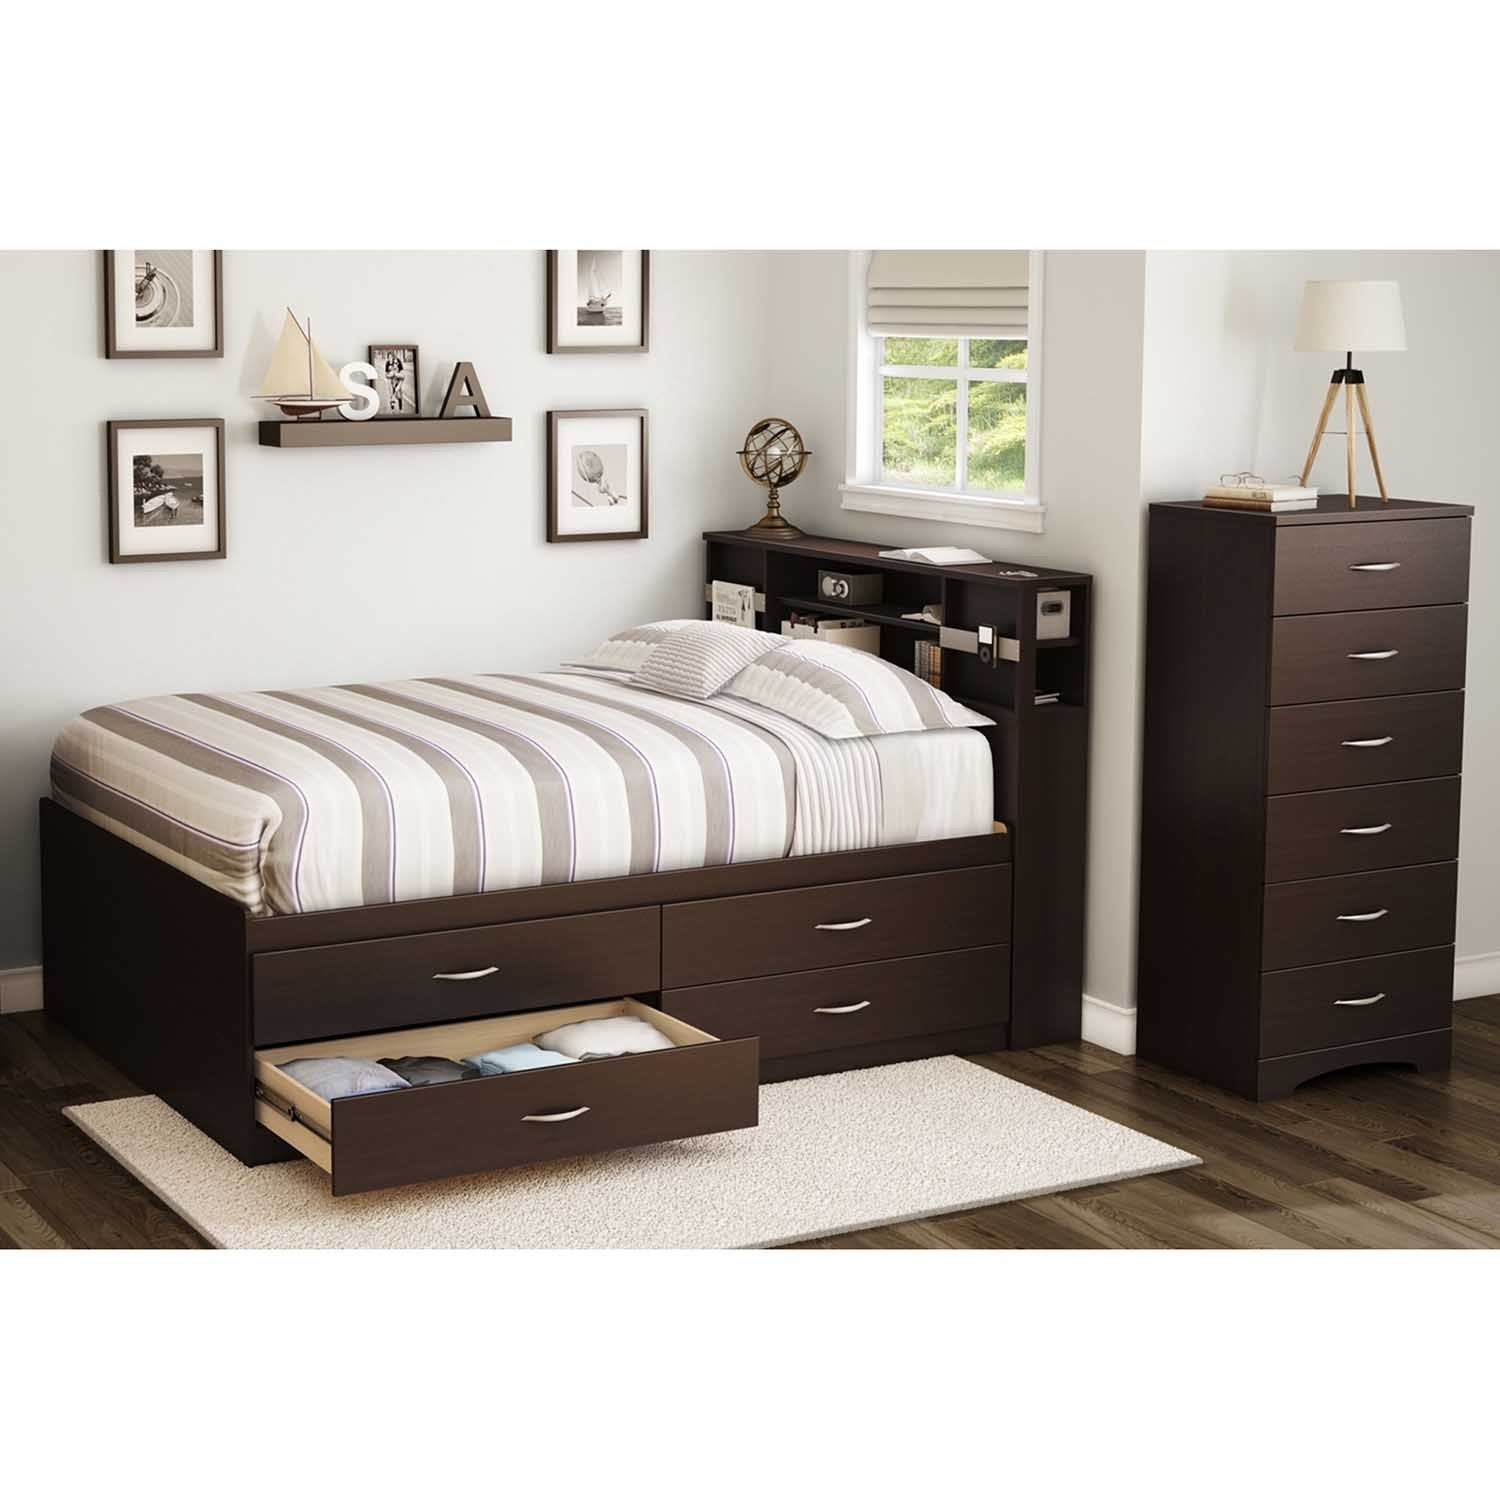 South Shore Step One Full Bookcase Headboard (Chocolate),...